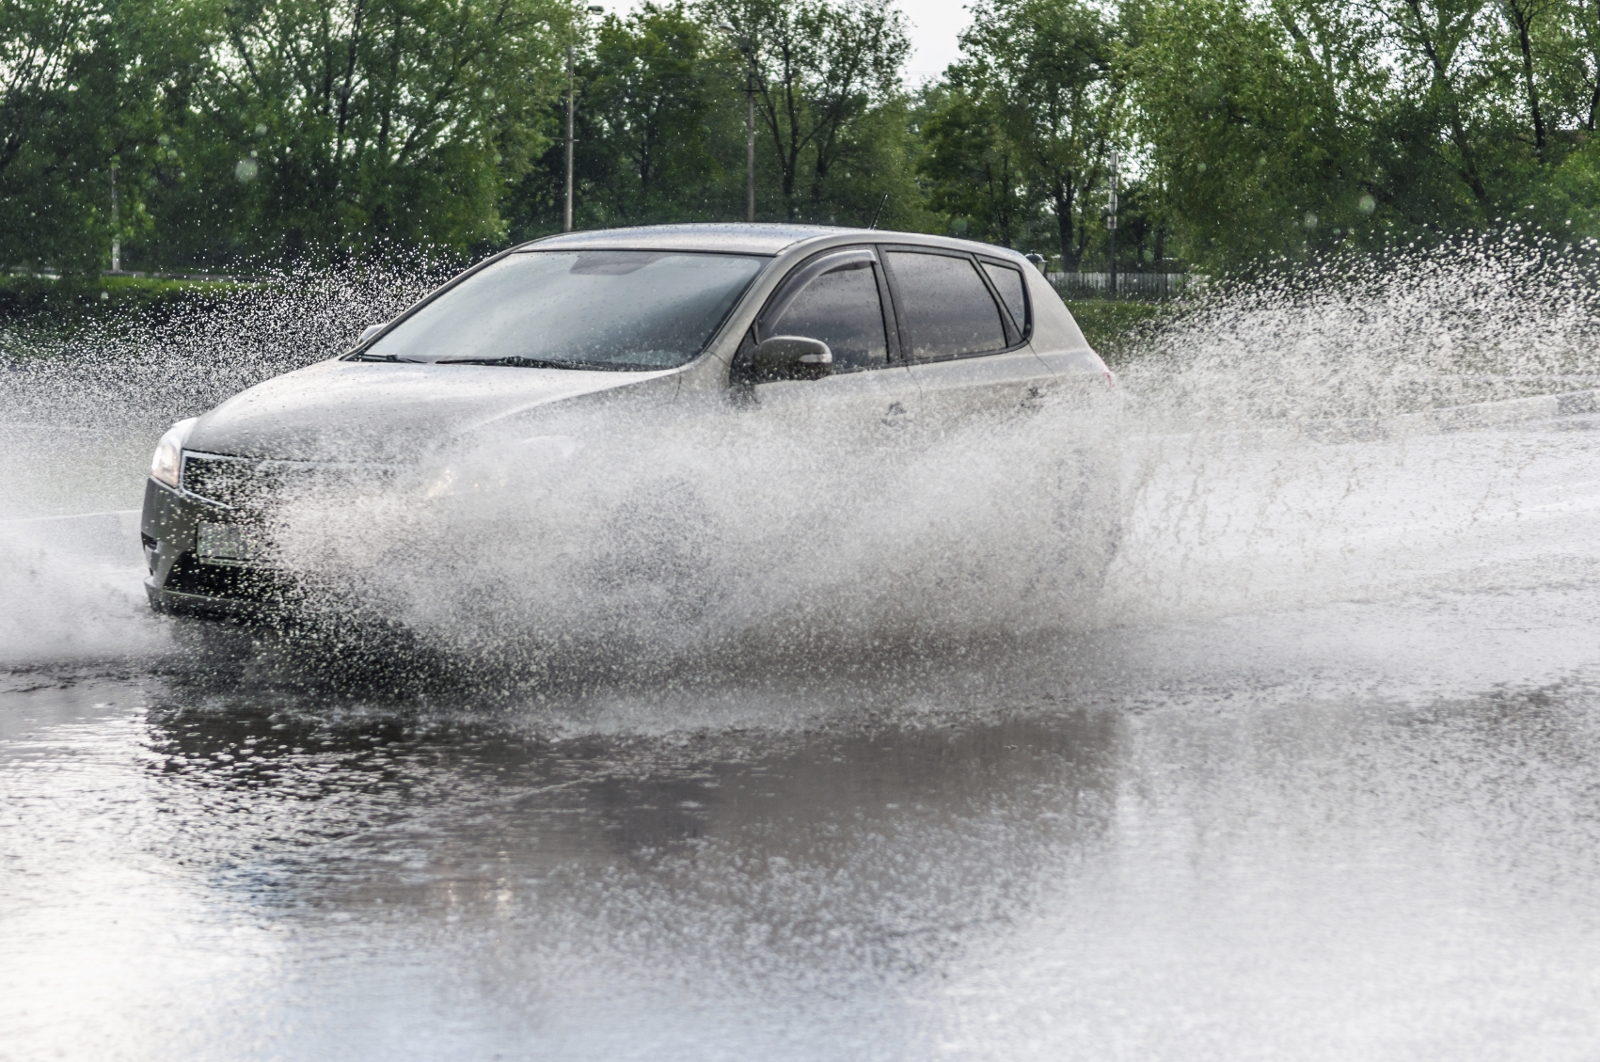 Driving in floods